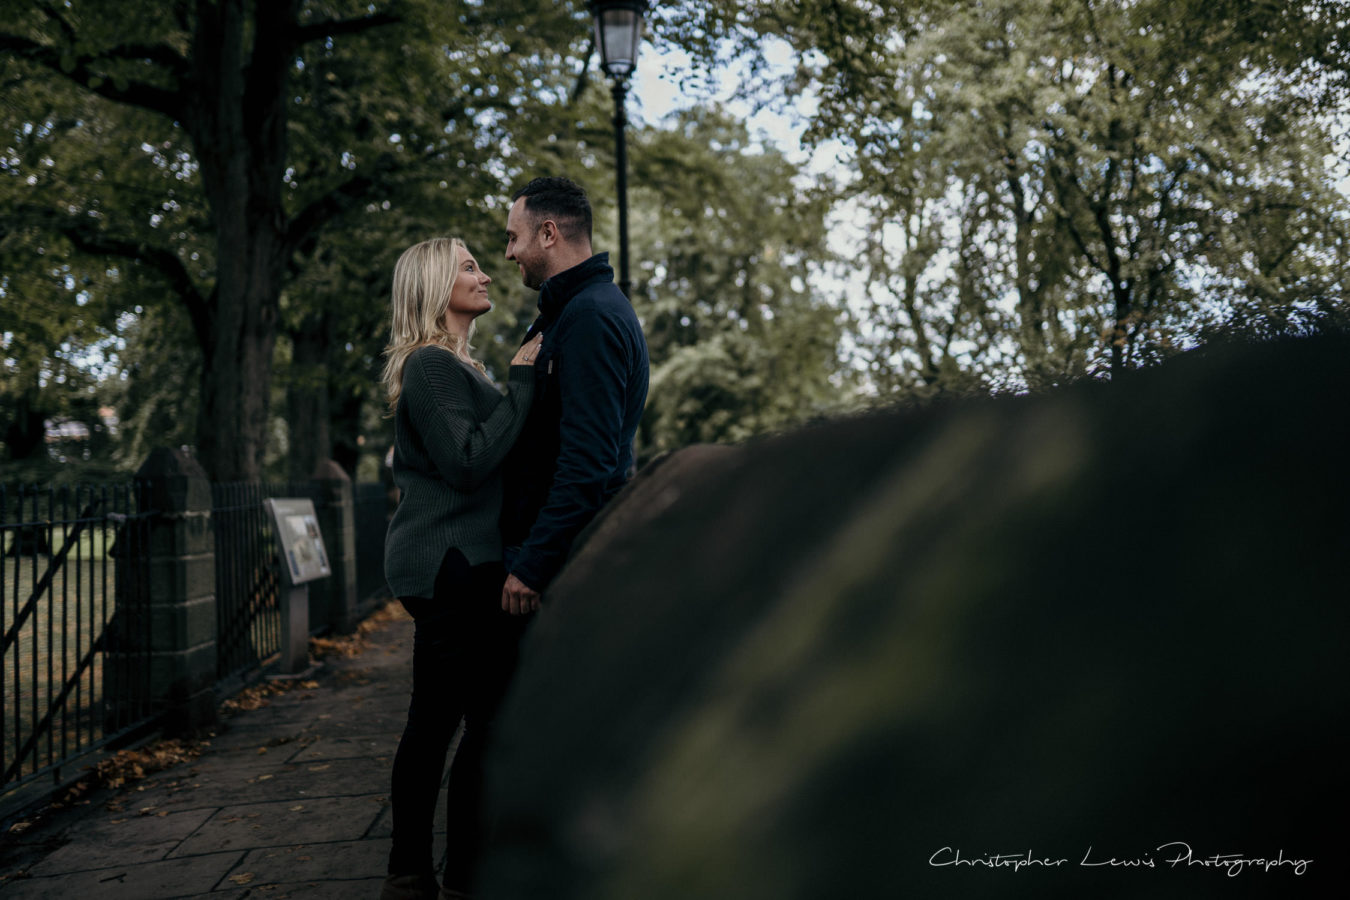 Chester-Pre-Wedding-Shoot-Christopher-Lewis-Photography-24